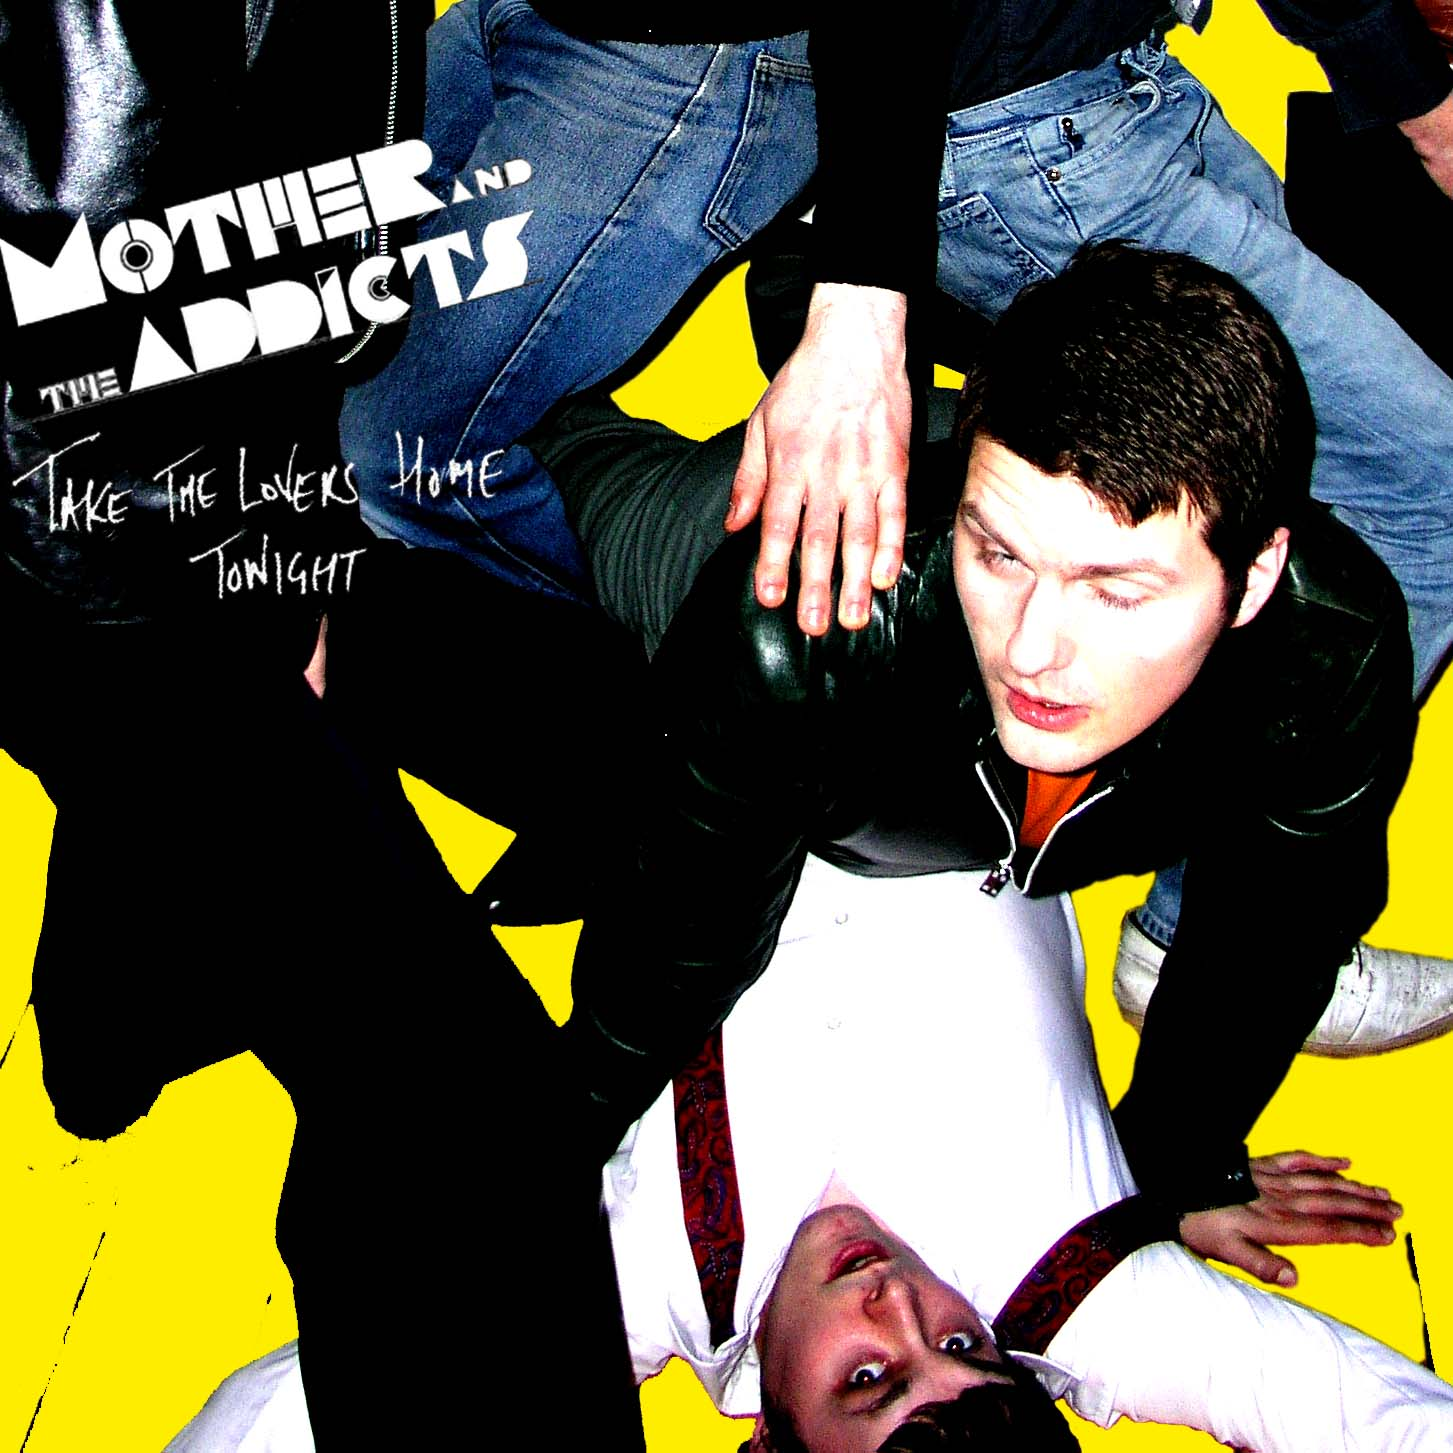 Mother And The Addicts - Take The Lovers Home Tonight - Digital Album (2005) - Mother And The Addicts